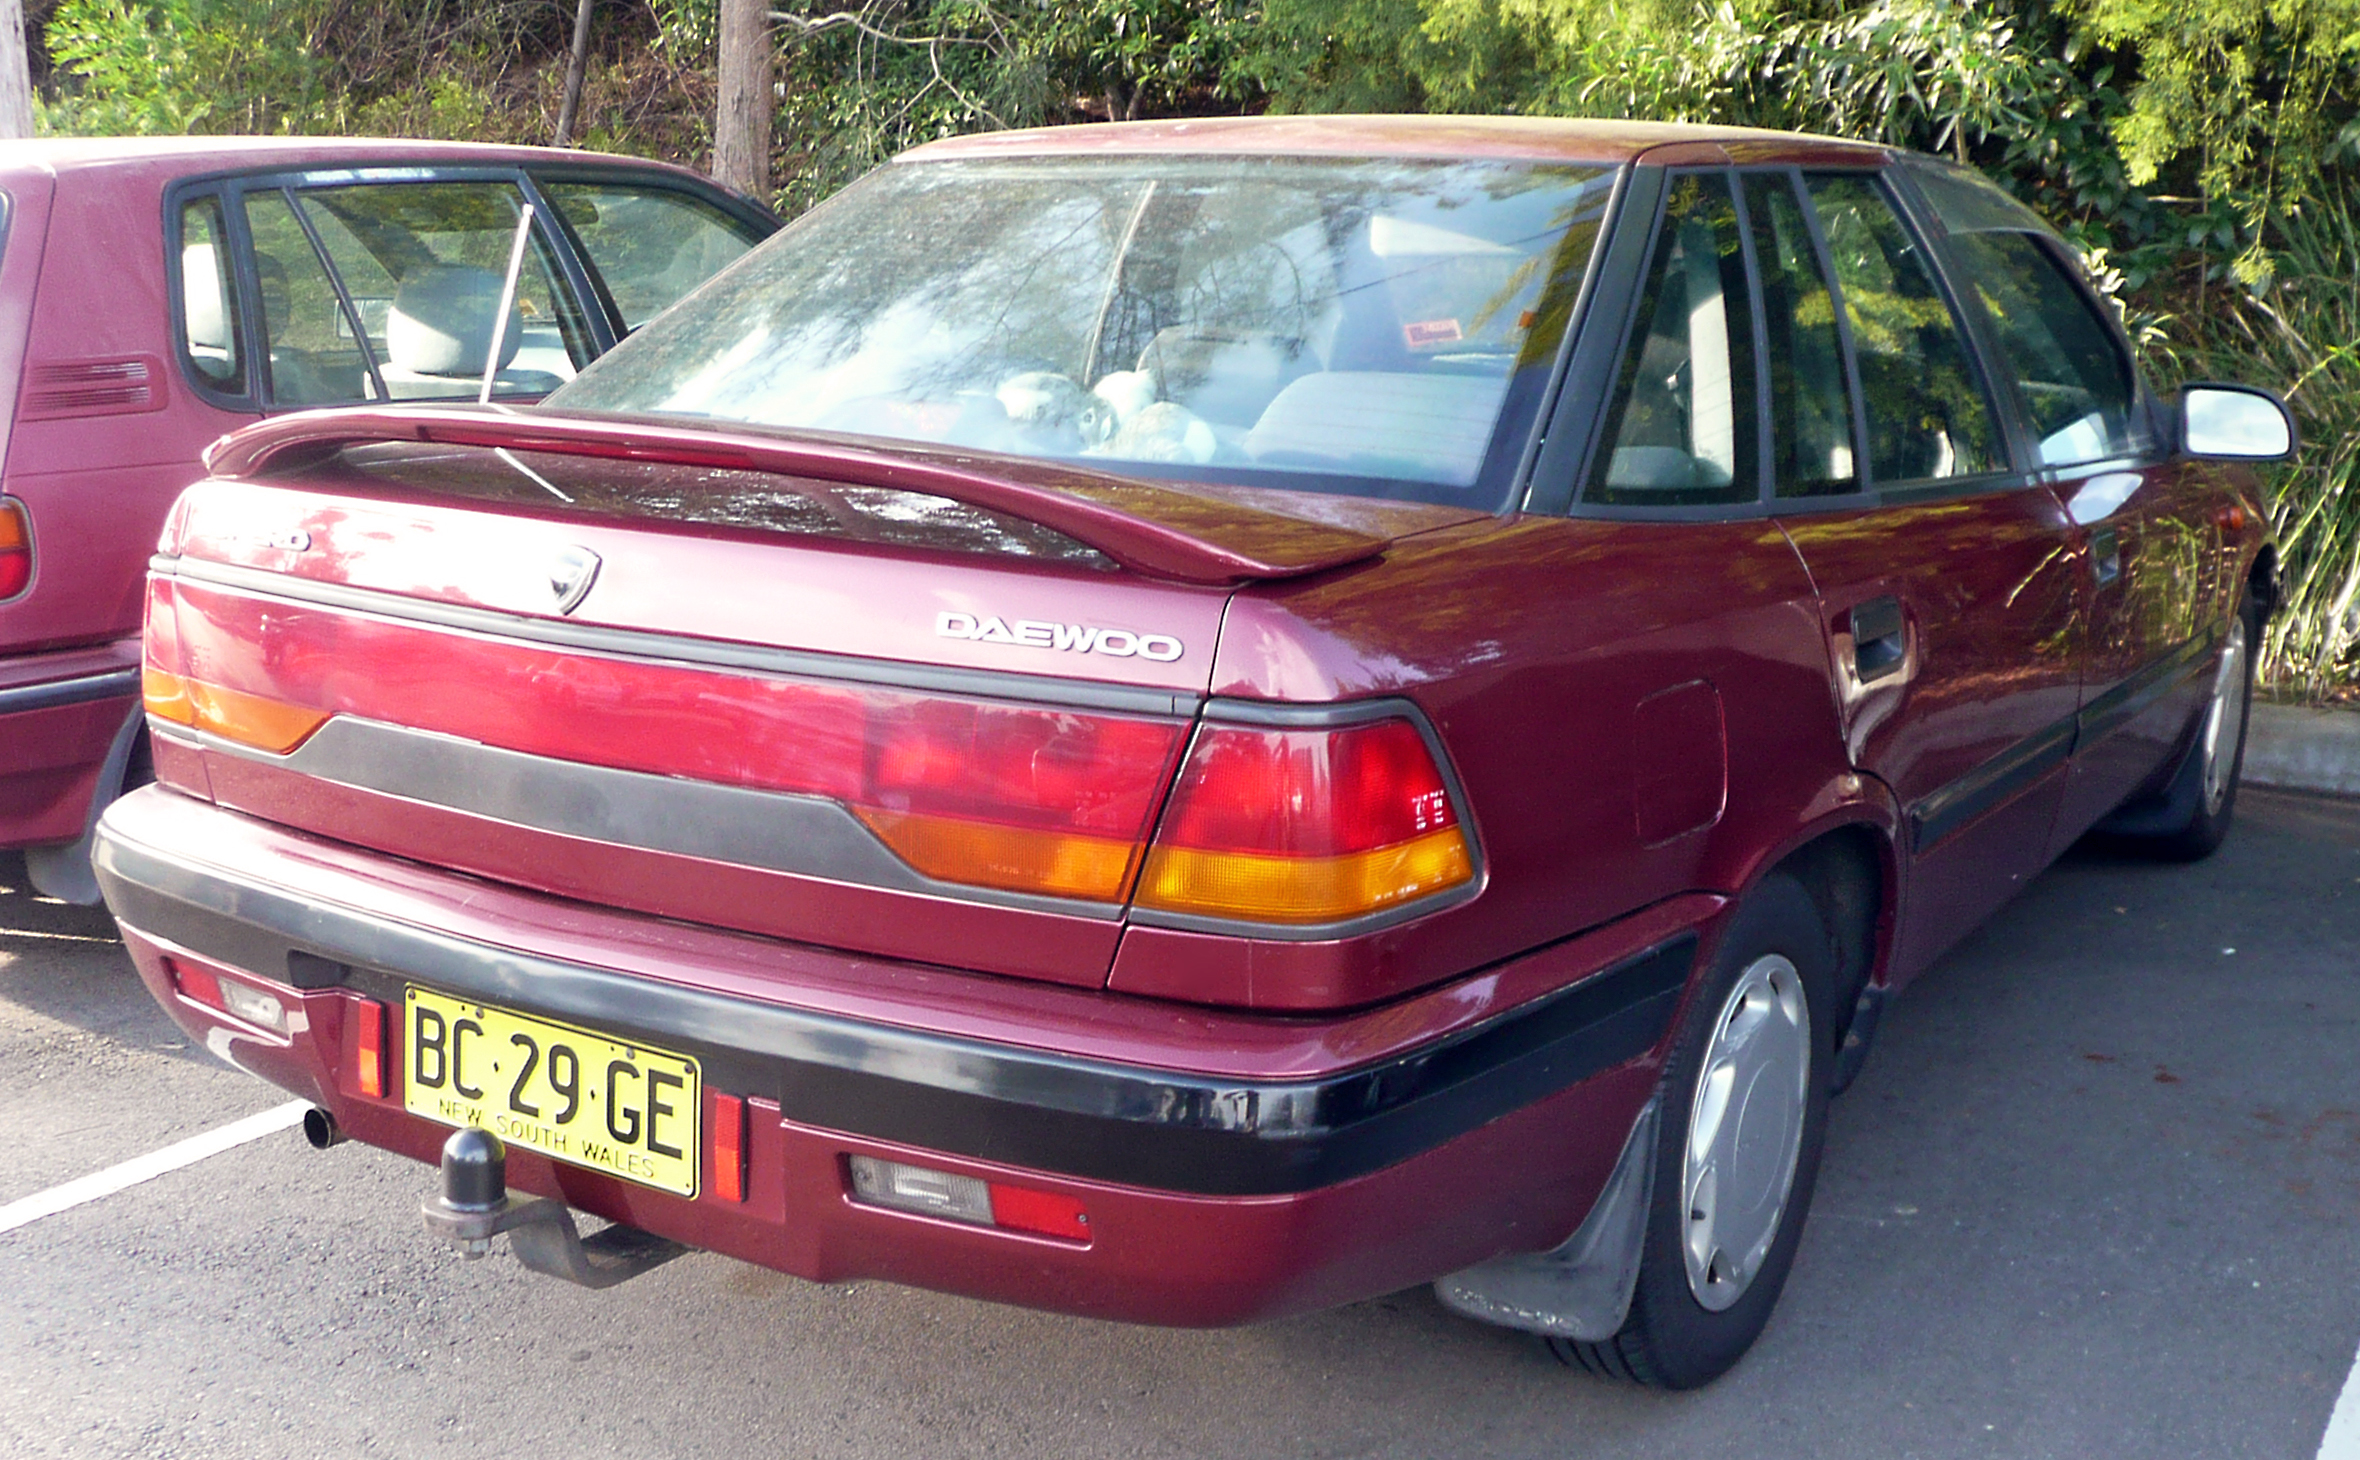 File:1995-1997 Daewoo Espero CD sedan 01.jpg - Wikimedia Commons